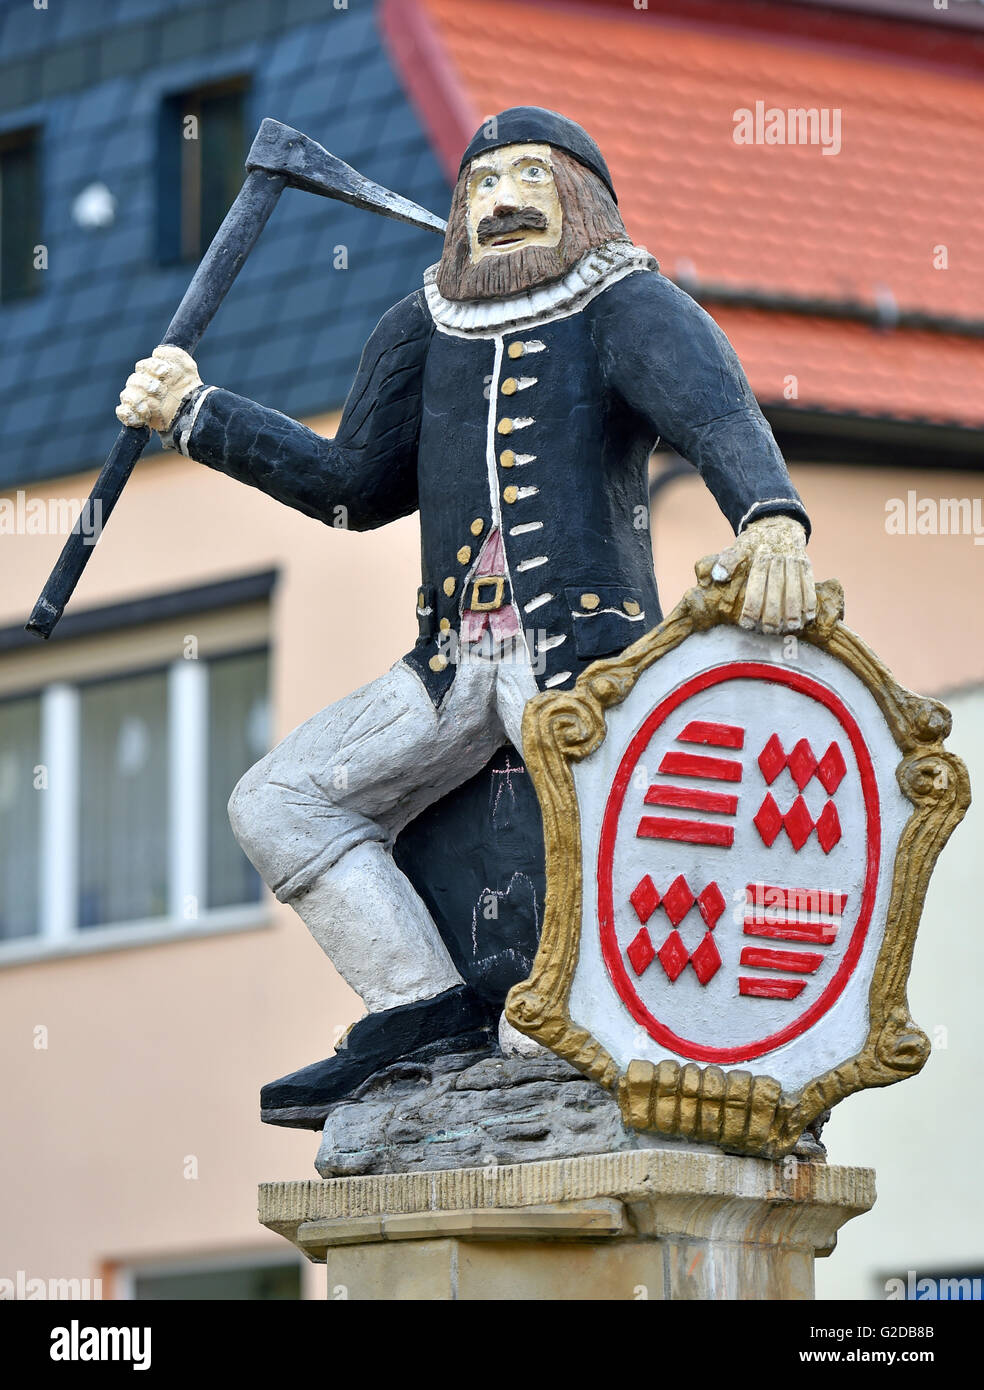 Gerbstedt, Germany. 25th Apr, 2016. 'Kamerad Martin', symbol for the mining workes in the region, standing - Stock Image